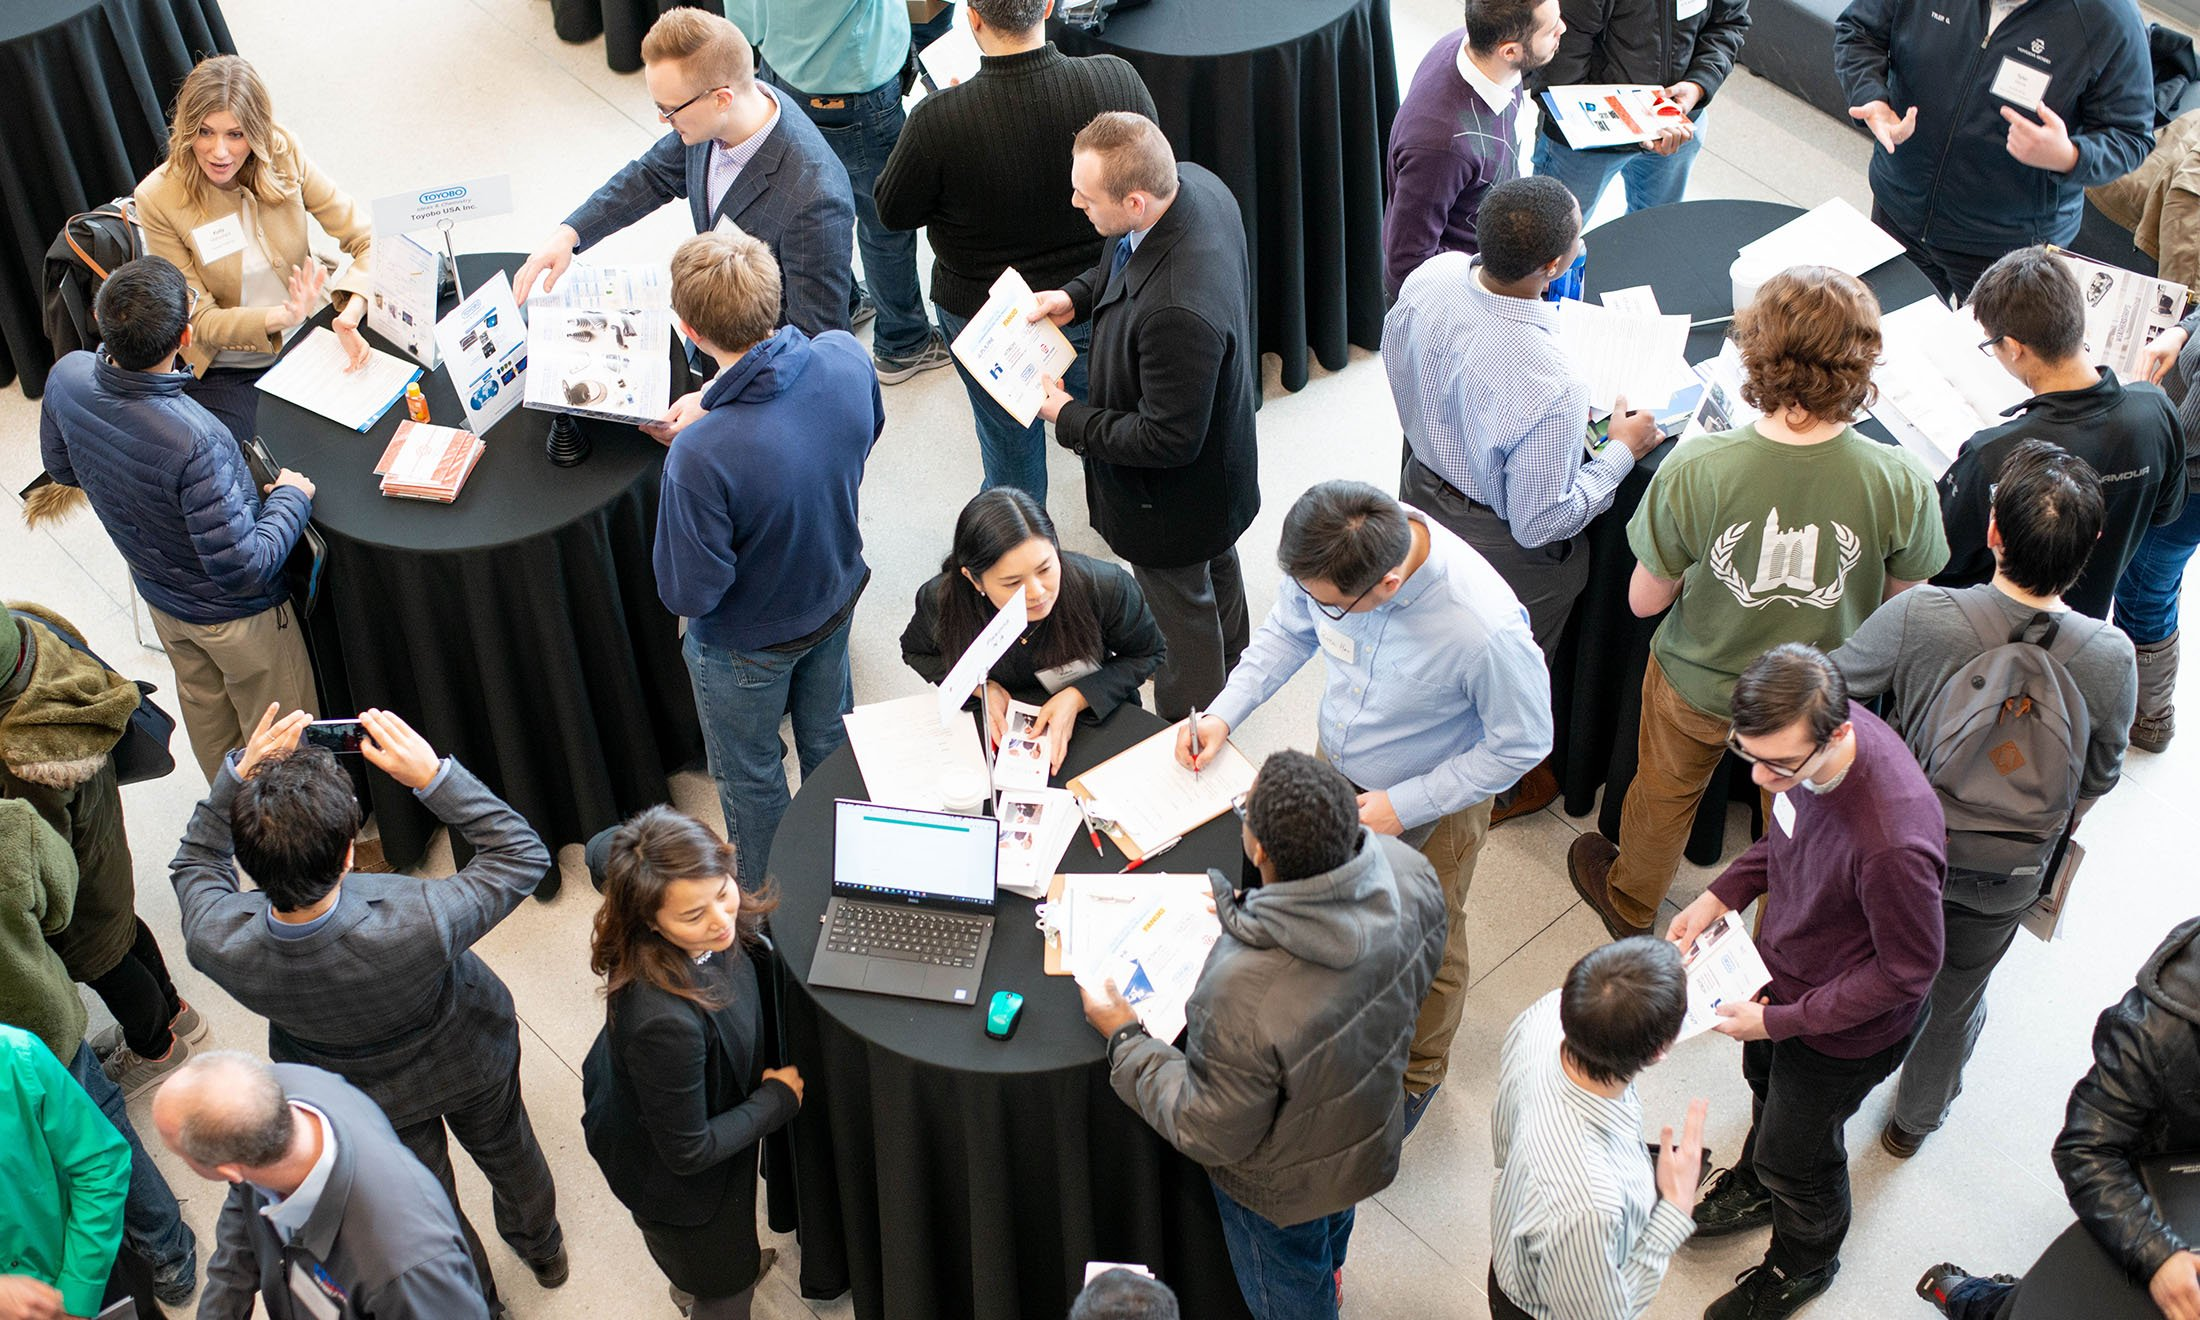 overhead image of event tables with people standing around them